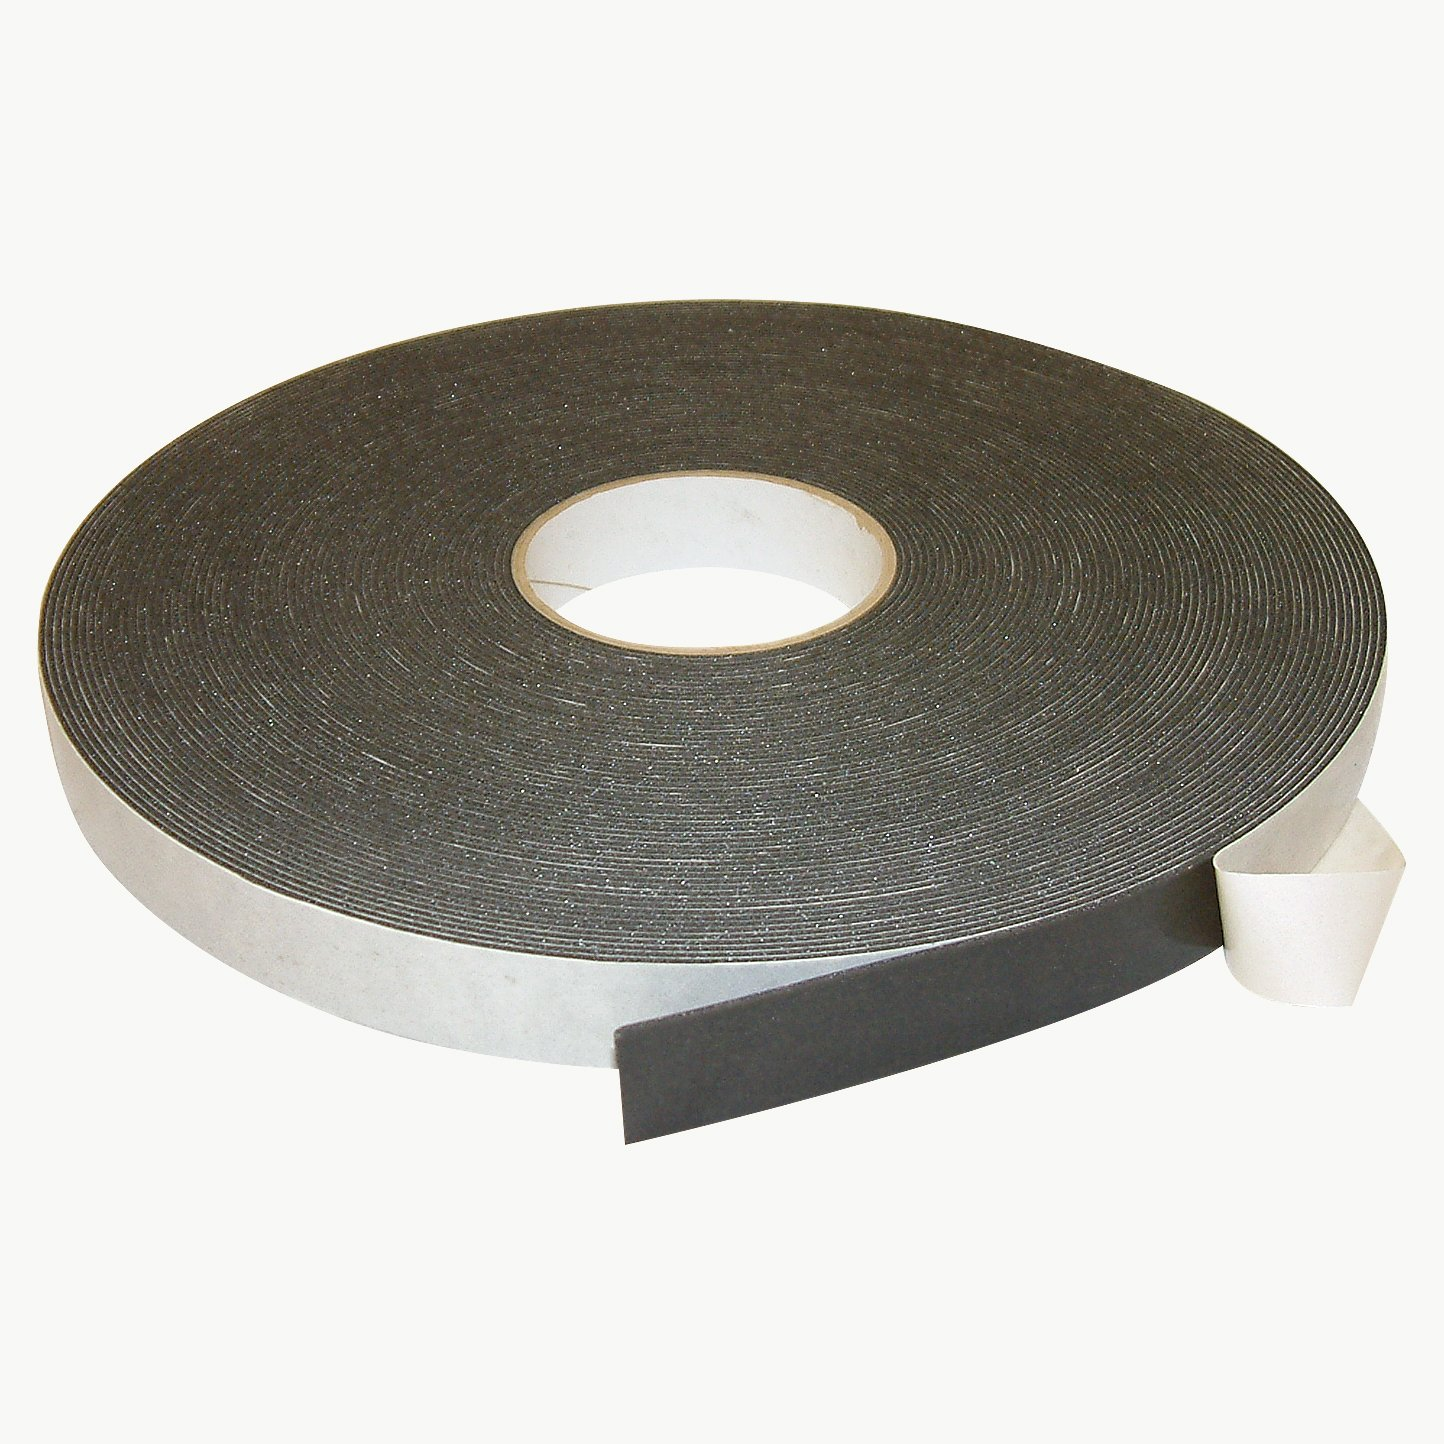 J.V. Converting DC-PEF06A/BLK136006 JVCC DC-PEF06A Double Coated Polyethylene Foam Tape: 1/16'' Thick x 1'' x 36 yd, Black